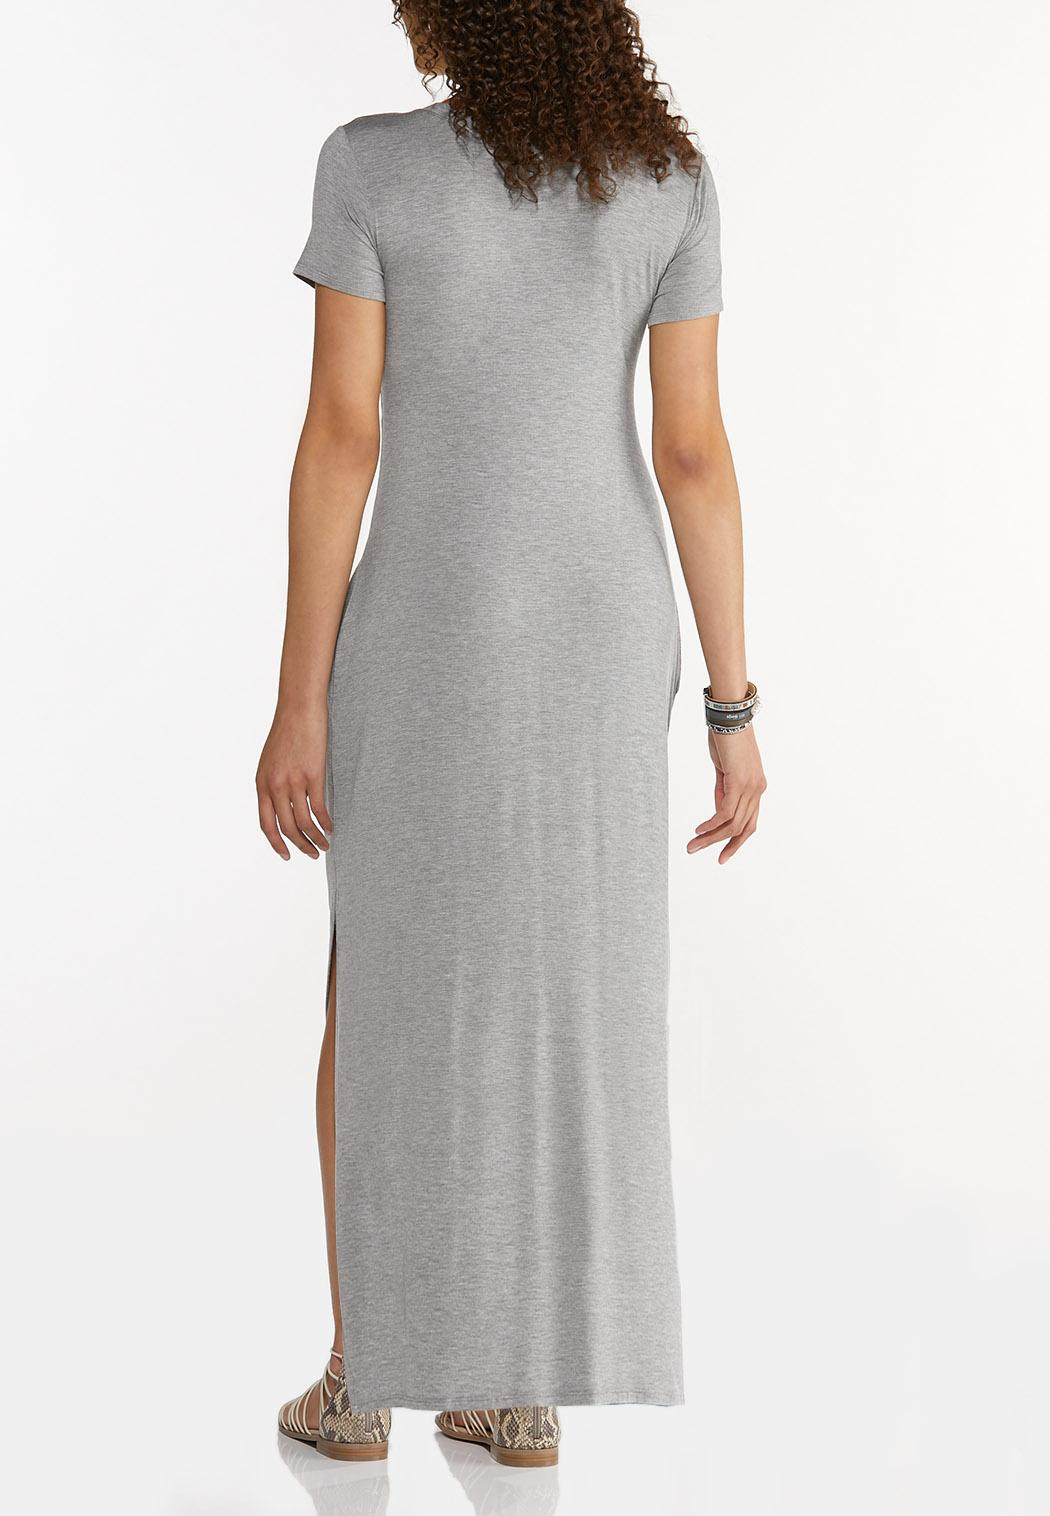 Plus Size Knotted Tee Maxi Dress (Item #44596236)